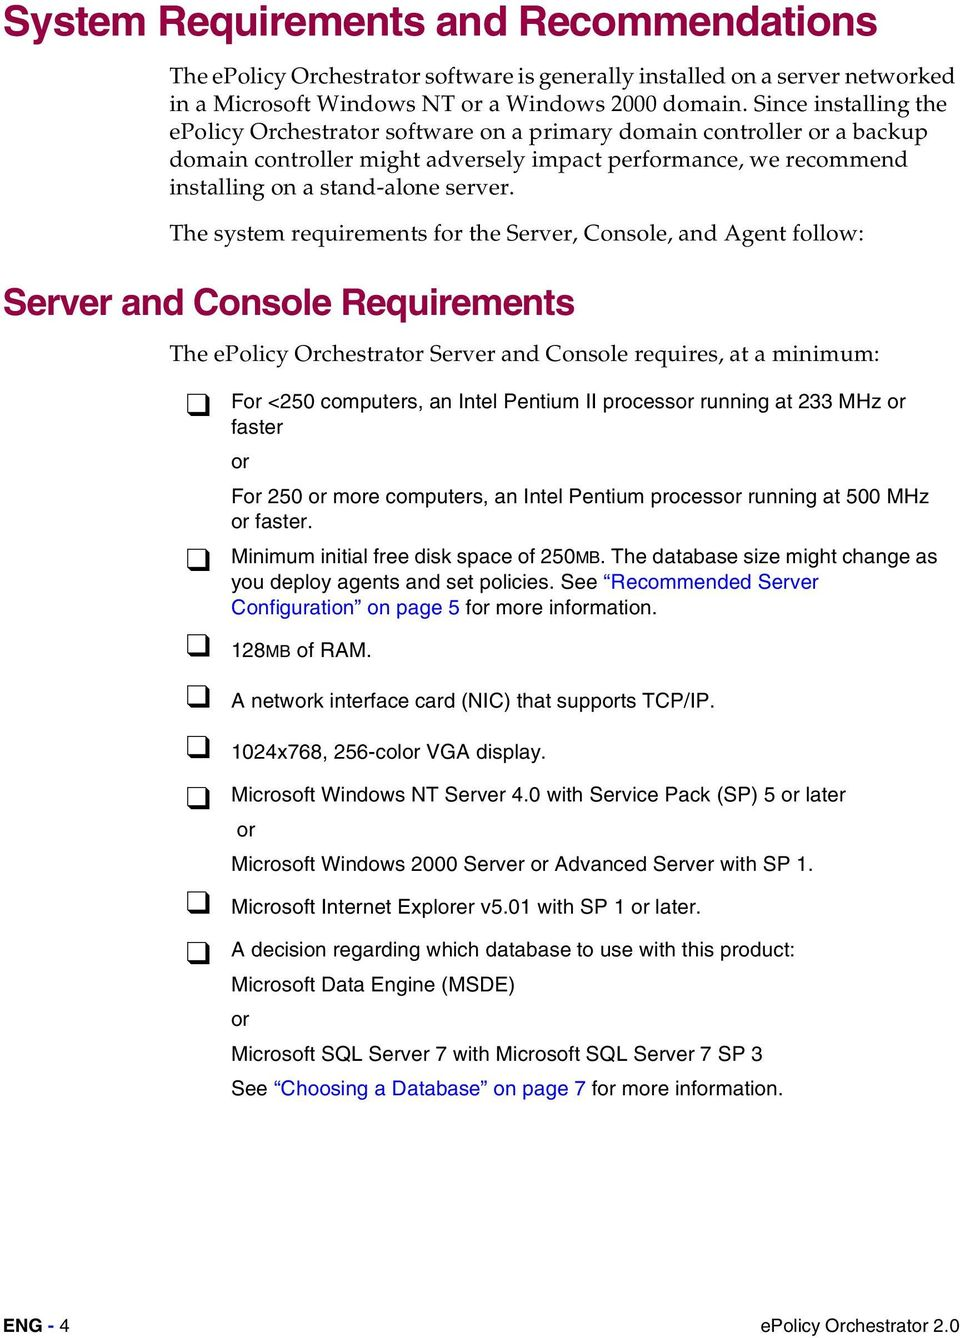 The system requirements for the Server, Console, and Agent follow: Server and Console Requirements The epolicy Orchestrator Server and Console requires, at a minimum: For <250 computers, an Intel